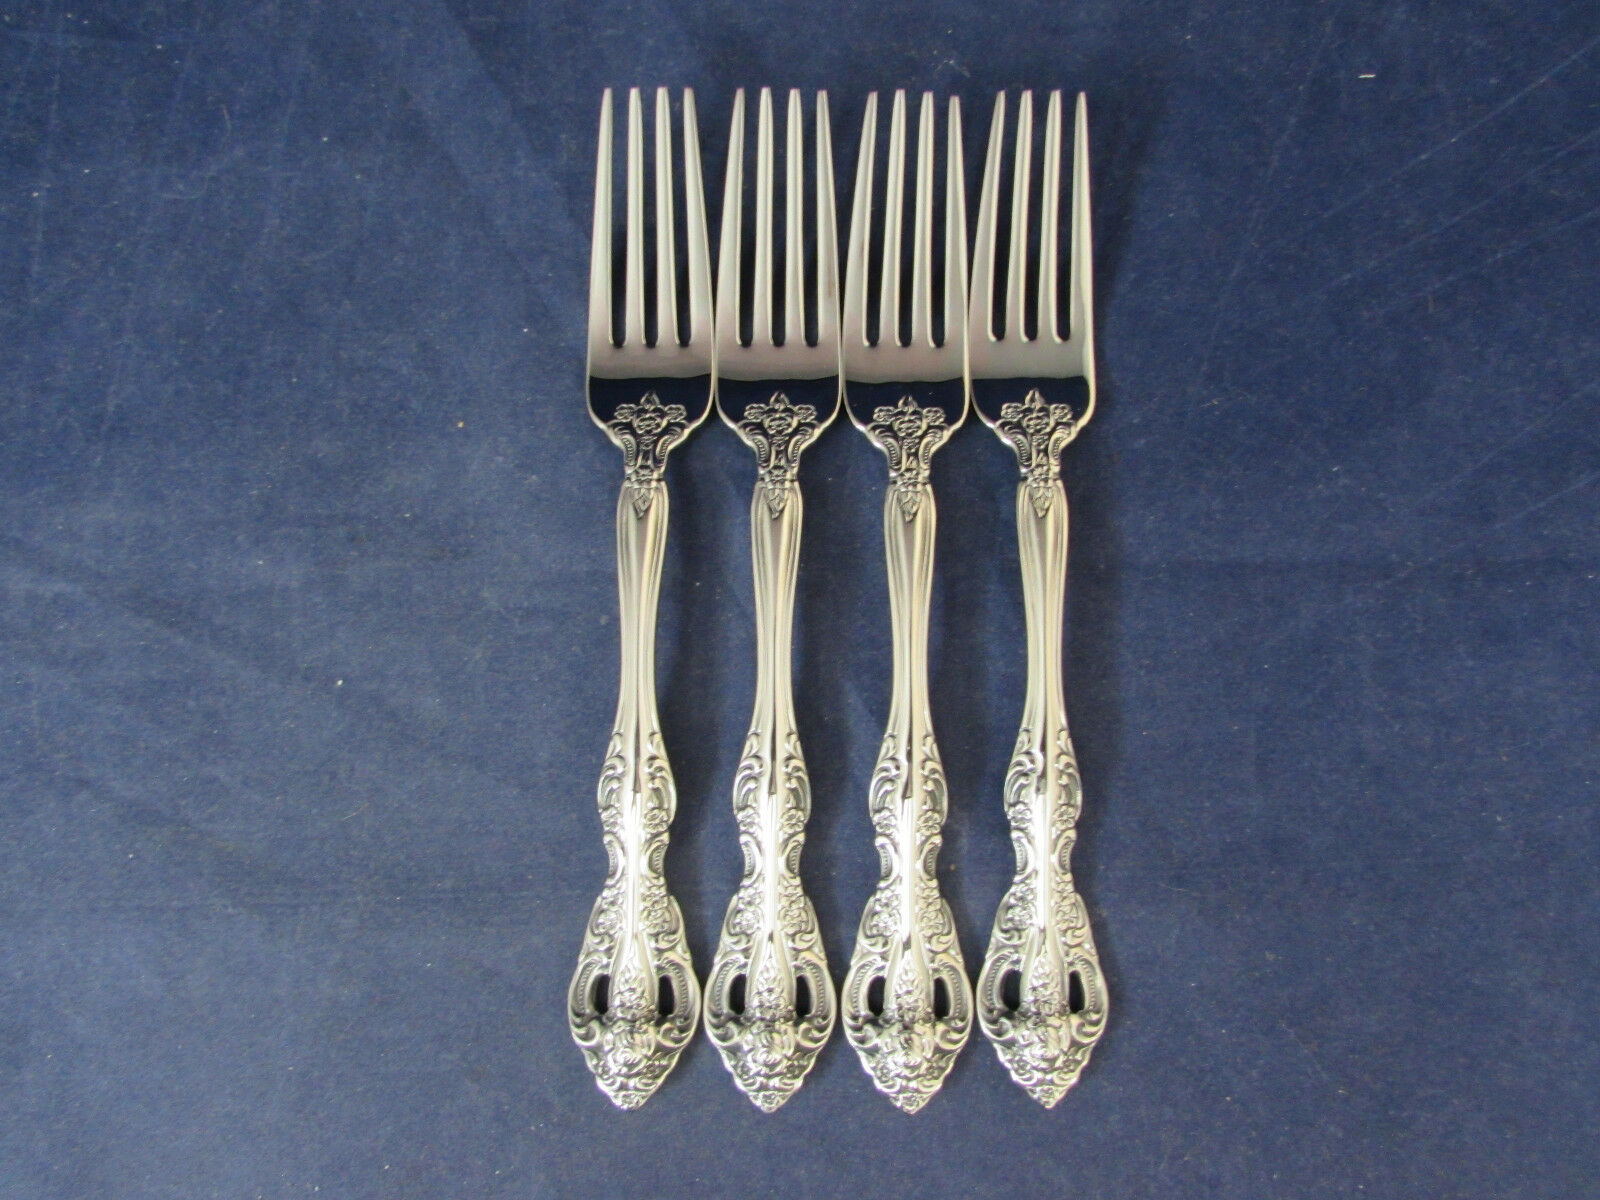 Oneida Stainless Michelangelo Flatware Silverware New